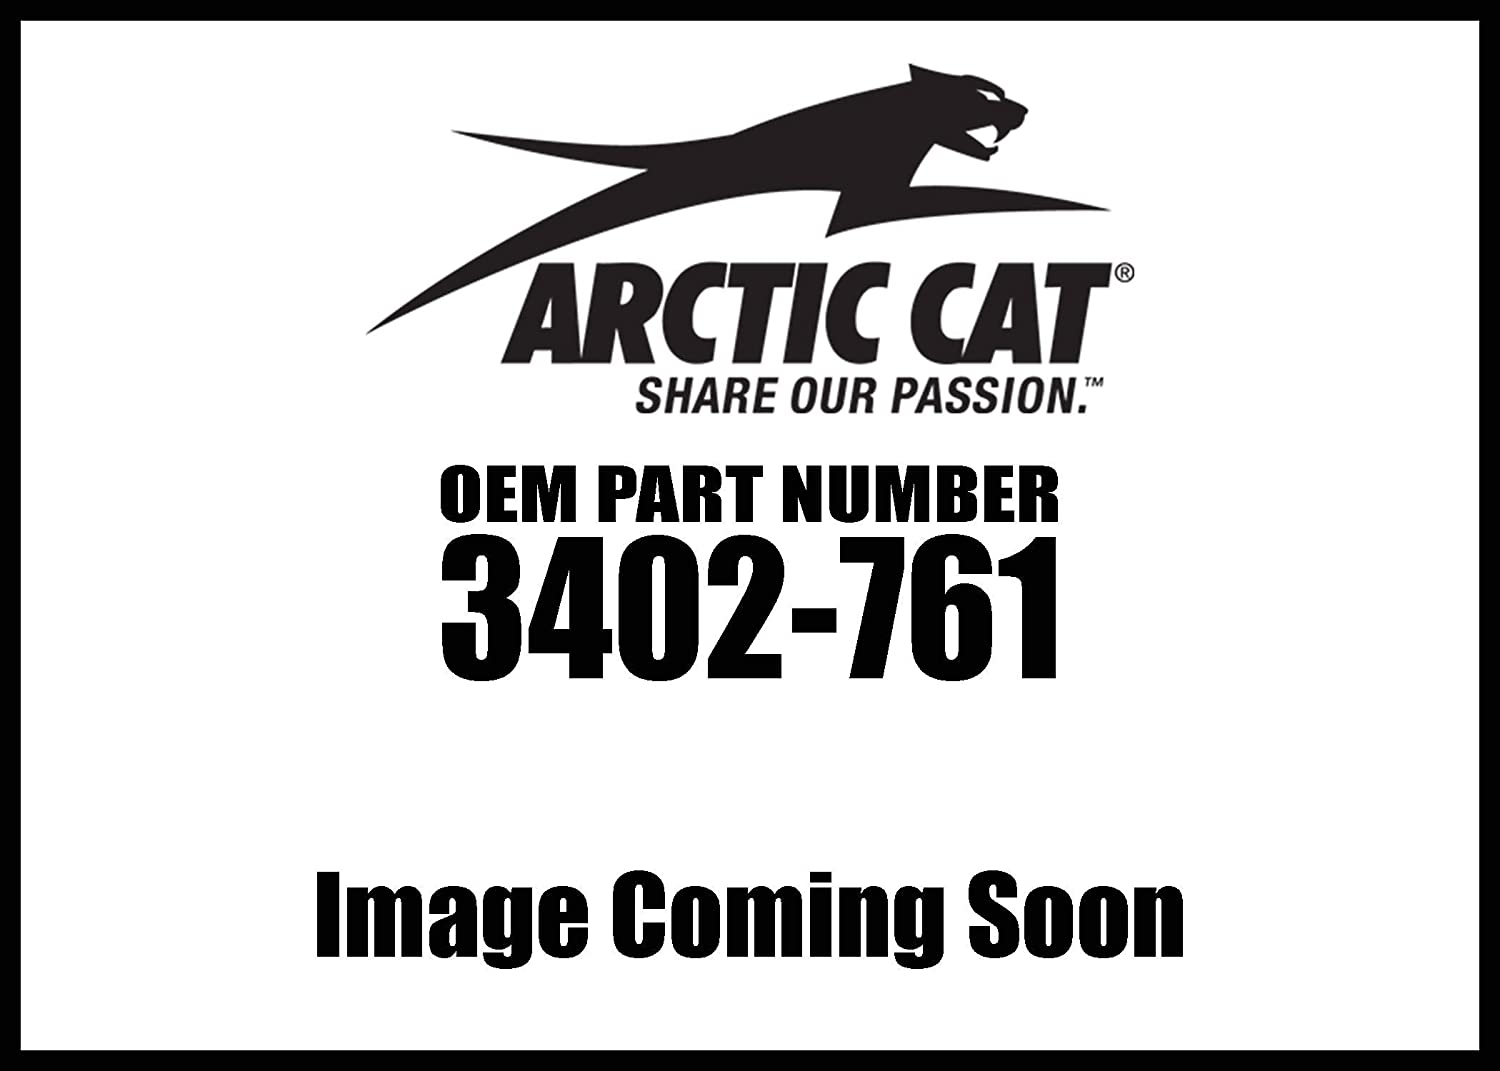 Arctic Cat 2003-2009 Atv 500 Auto Trans 4X4 Fis Atv 500 Auto Trans 4X4 Trv Seal Clutch Housing Rh 3402-761 New Oem